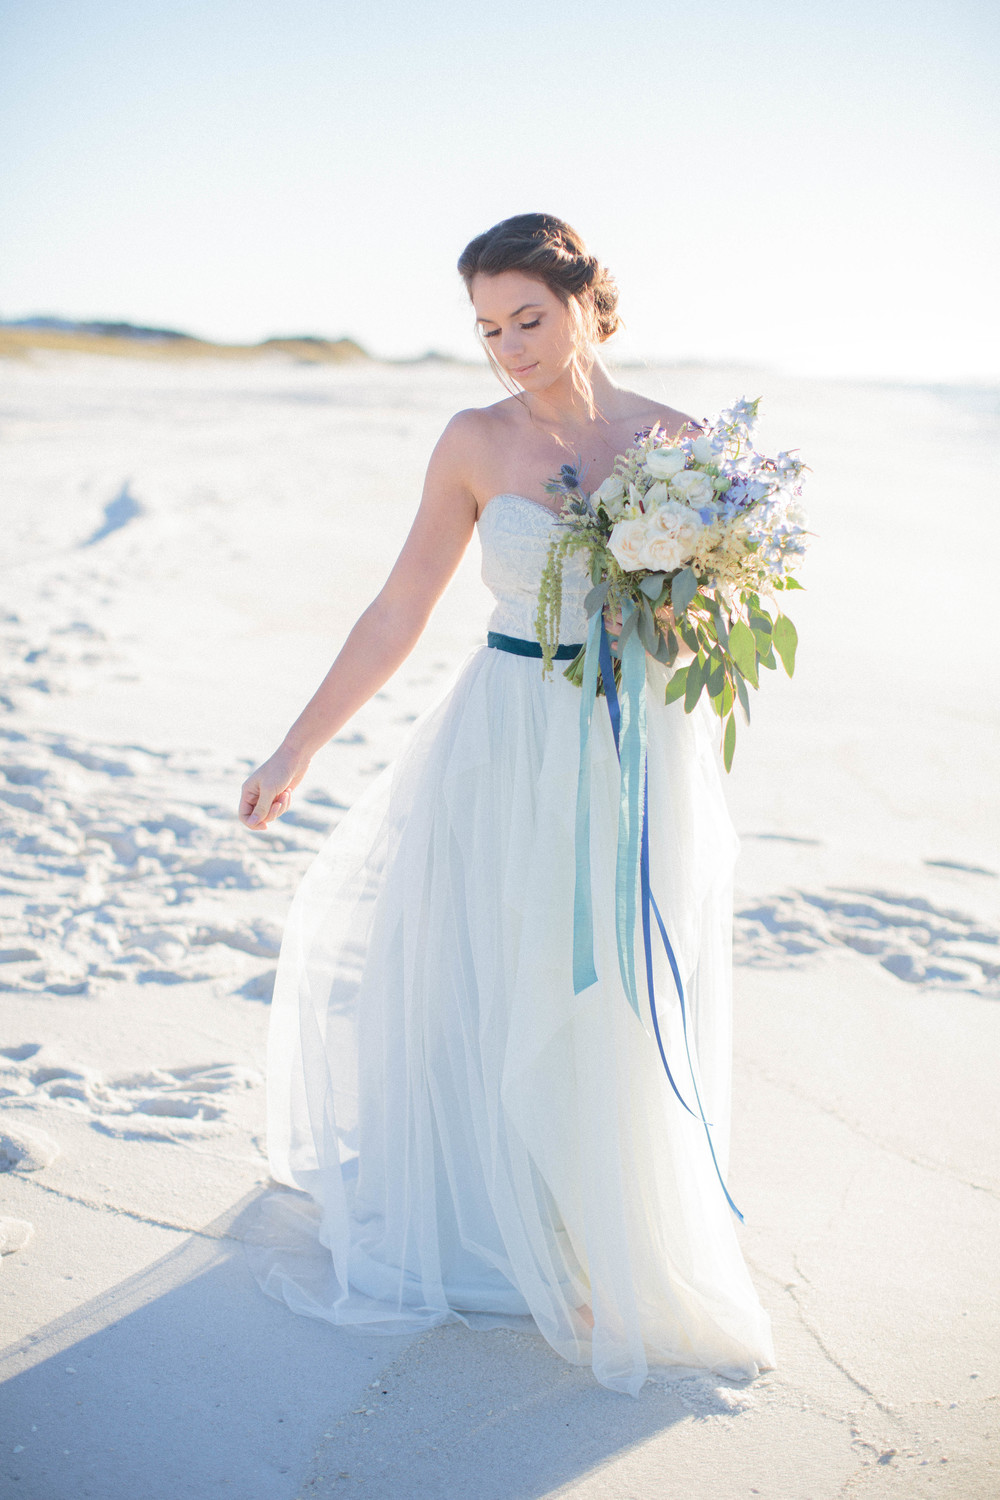 Ais-Portraits-ivey-weddings-and-events-ivory-and-beau-bridal-boutique-sunrise-wedding-sunrise-bridal-session-blue-dress-rebecca-schoneveld-wedding-dress-blue-velvet-wedding-beach-wedding-savannah-bridal-boutique-savannah-wedding-15.jpg